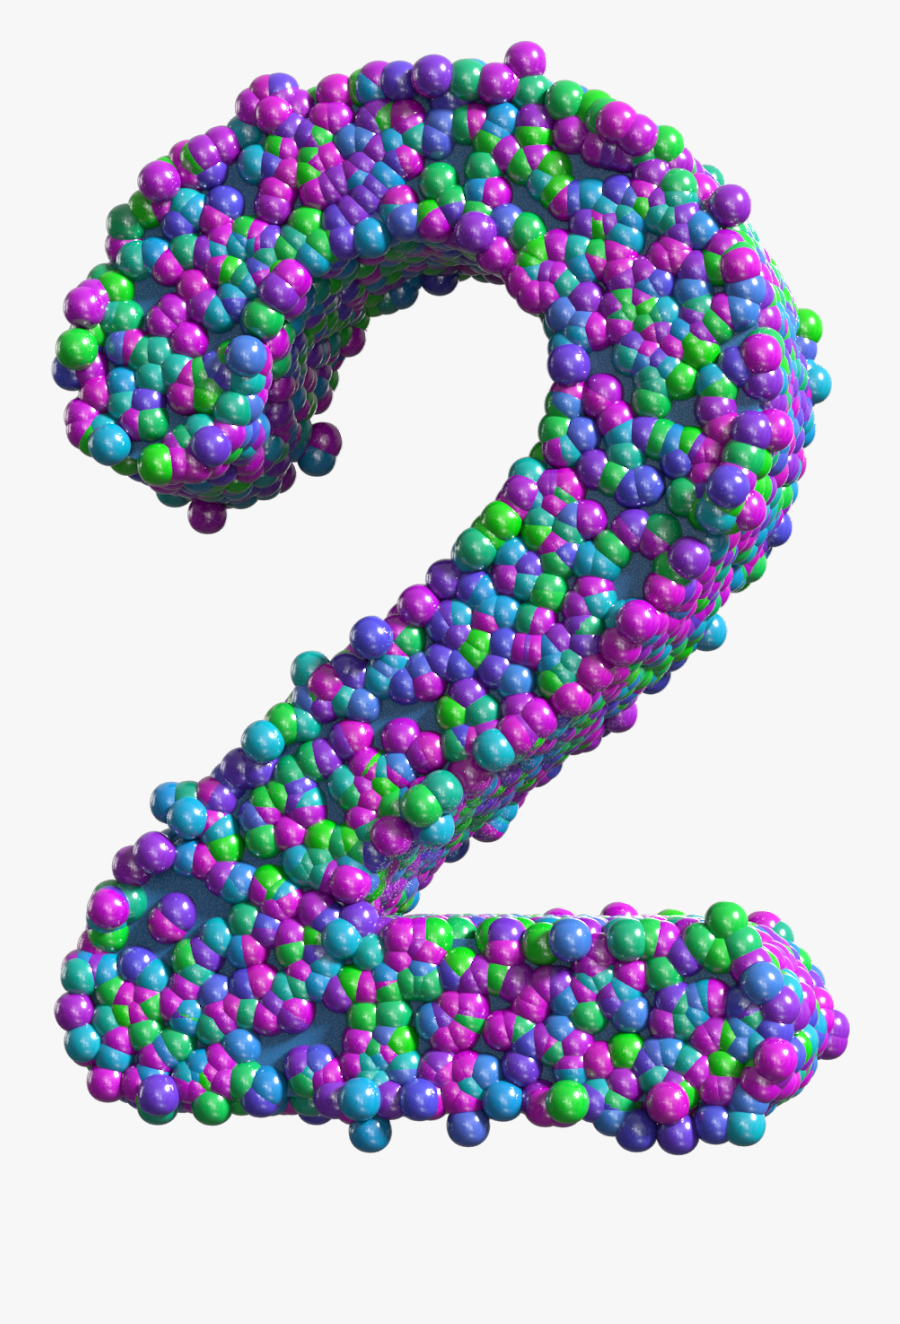 Colorful Number Two Transparent Png Clip Art Image - Transparent Colorful Numbers, Transparent Clipart